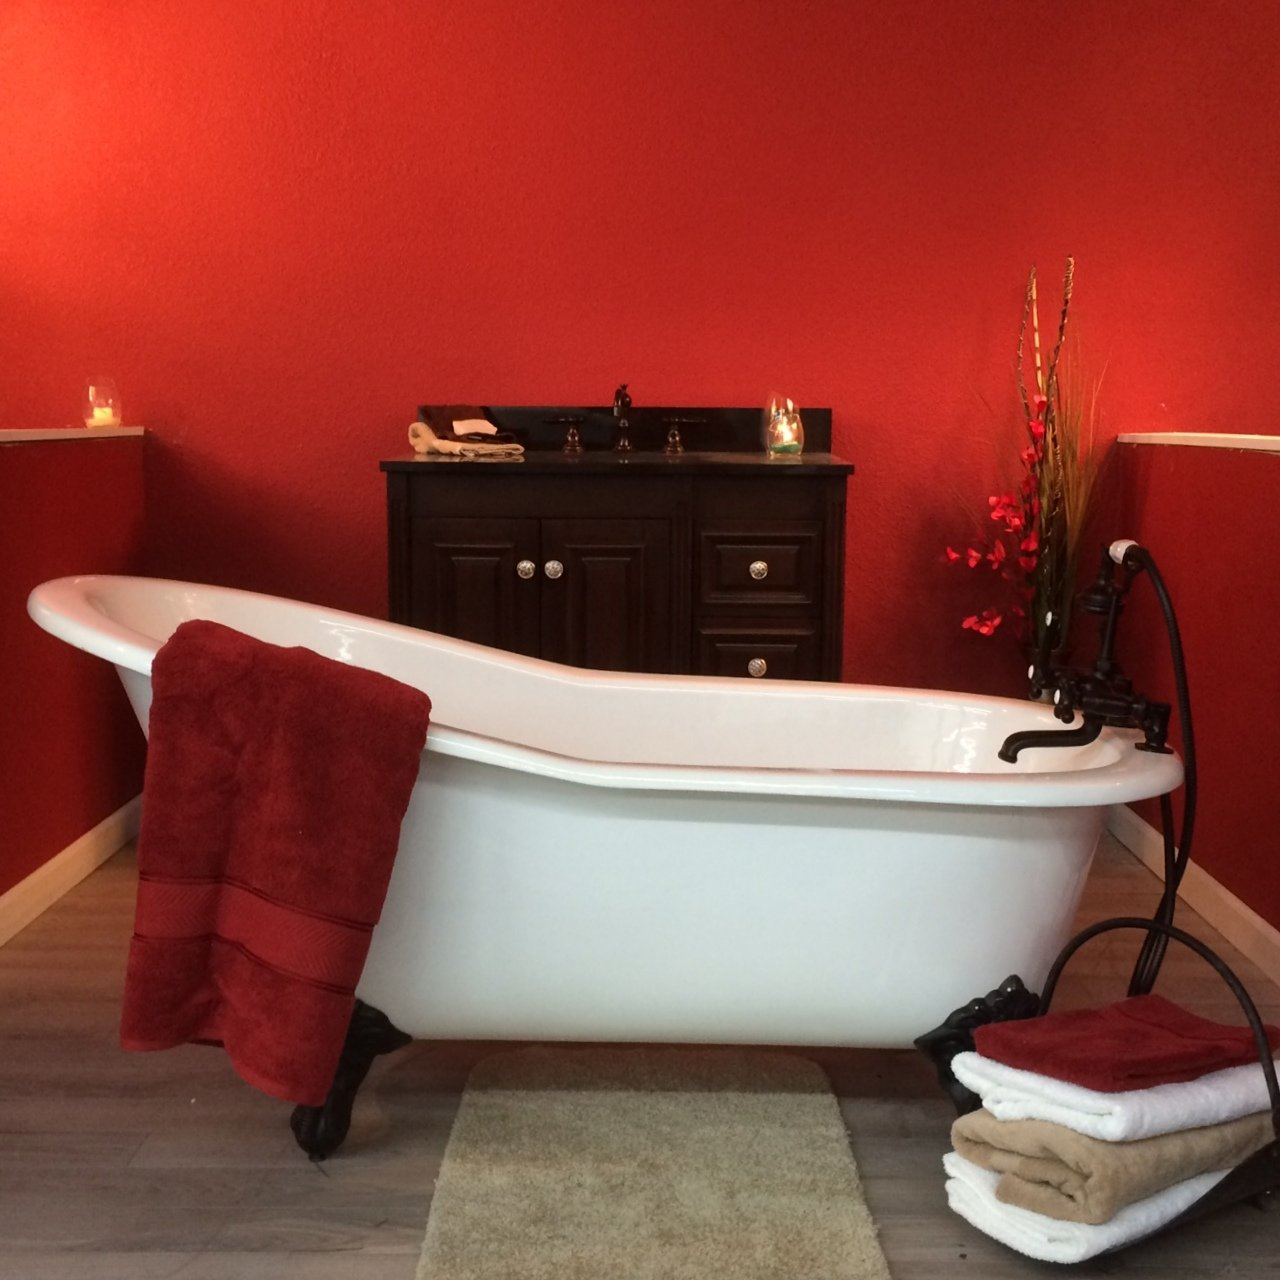 67 Cast Iron Slipper Tub with 7 Faucet hole Drillings /& Oil Rubbed Bronze Feet-Clay